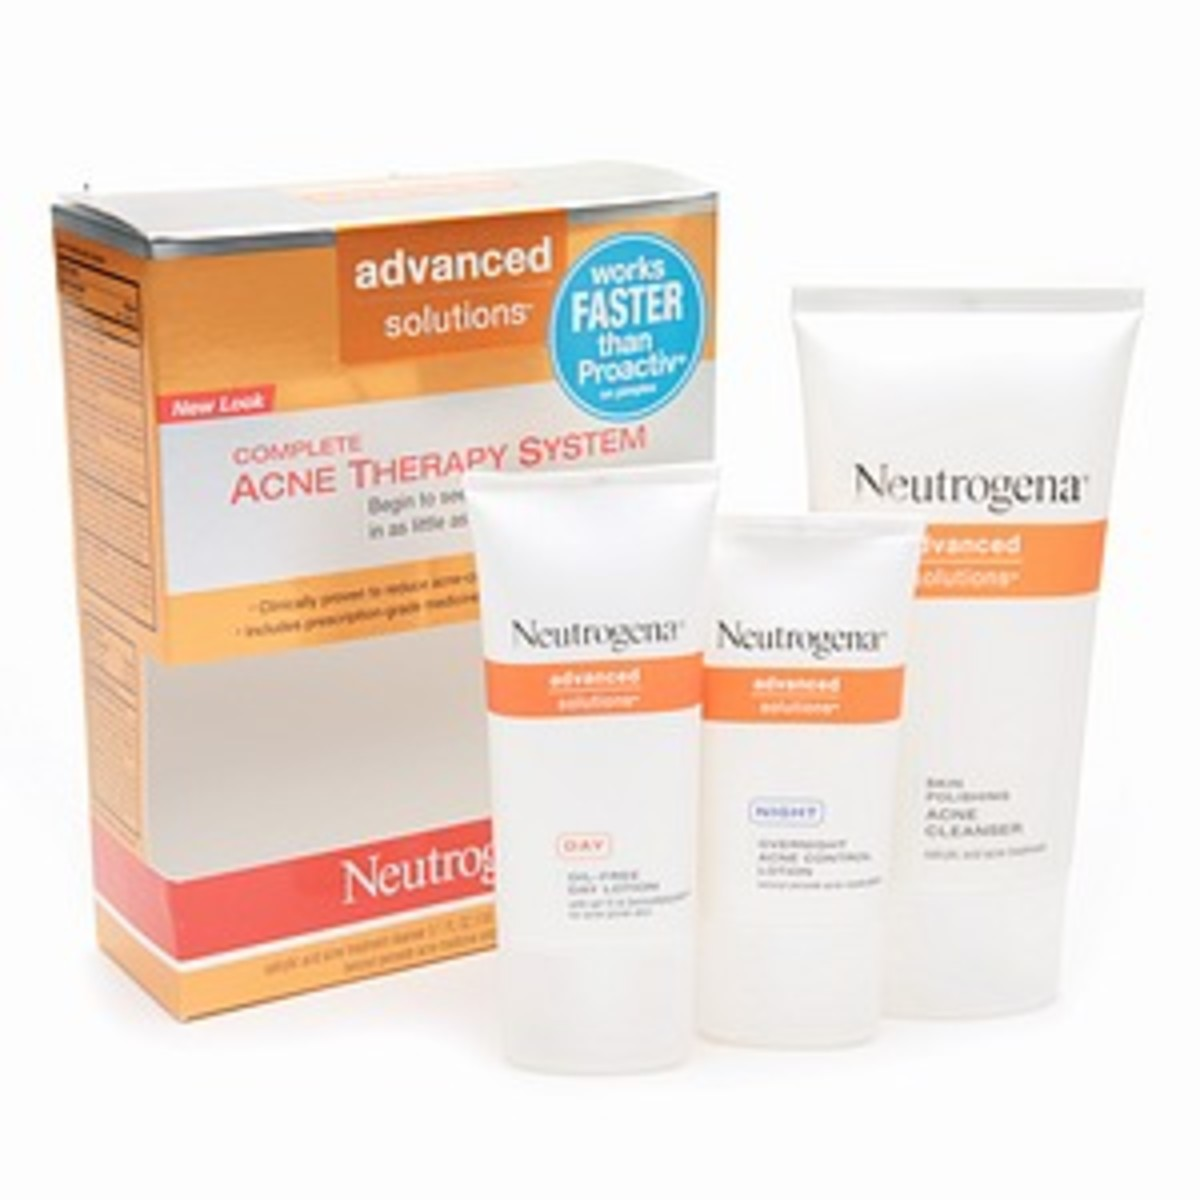 How Do Proactiv and Neutrogena Acne Treatment Systems Compare?